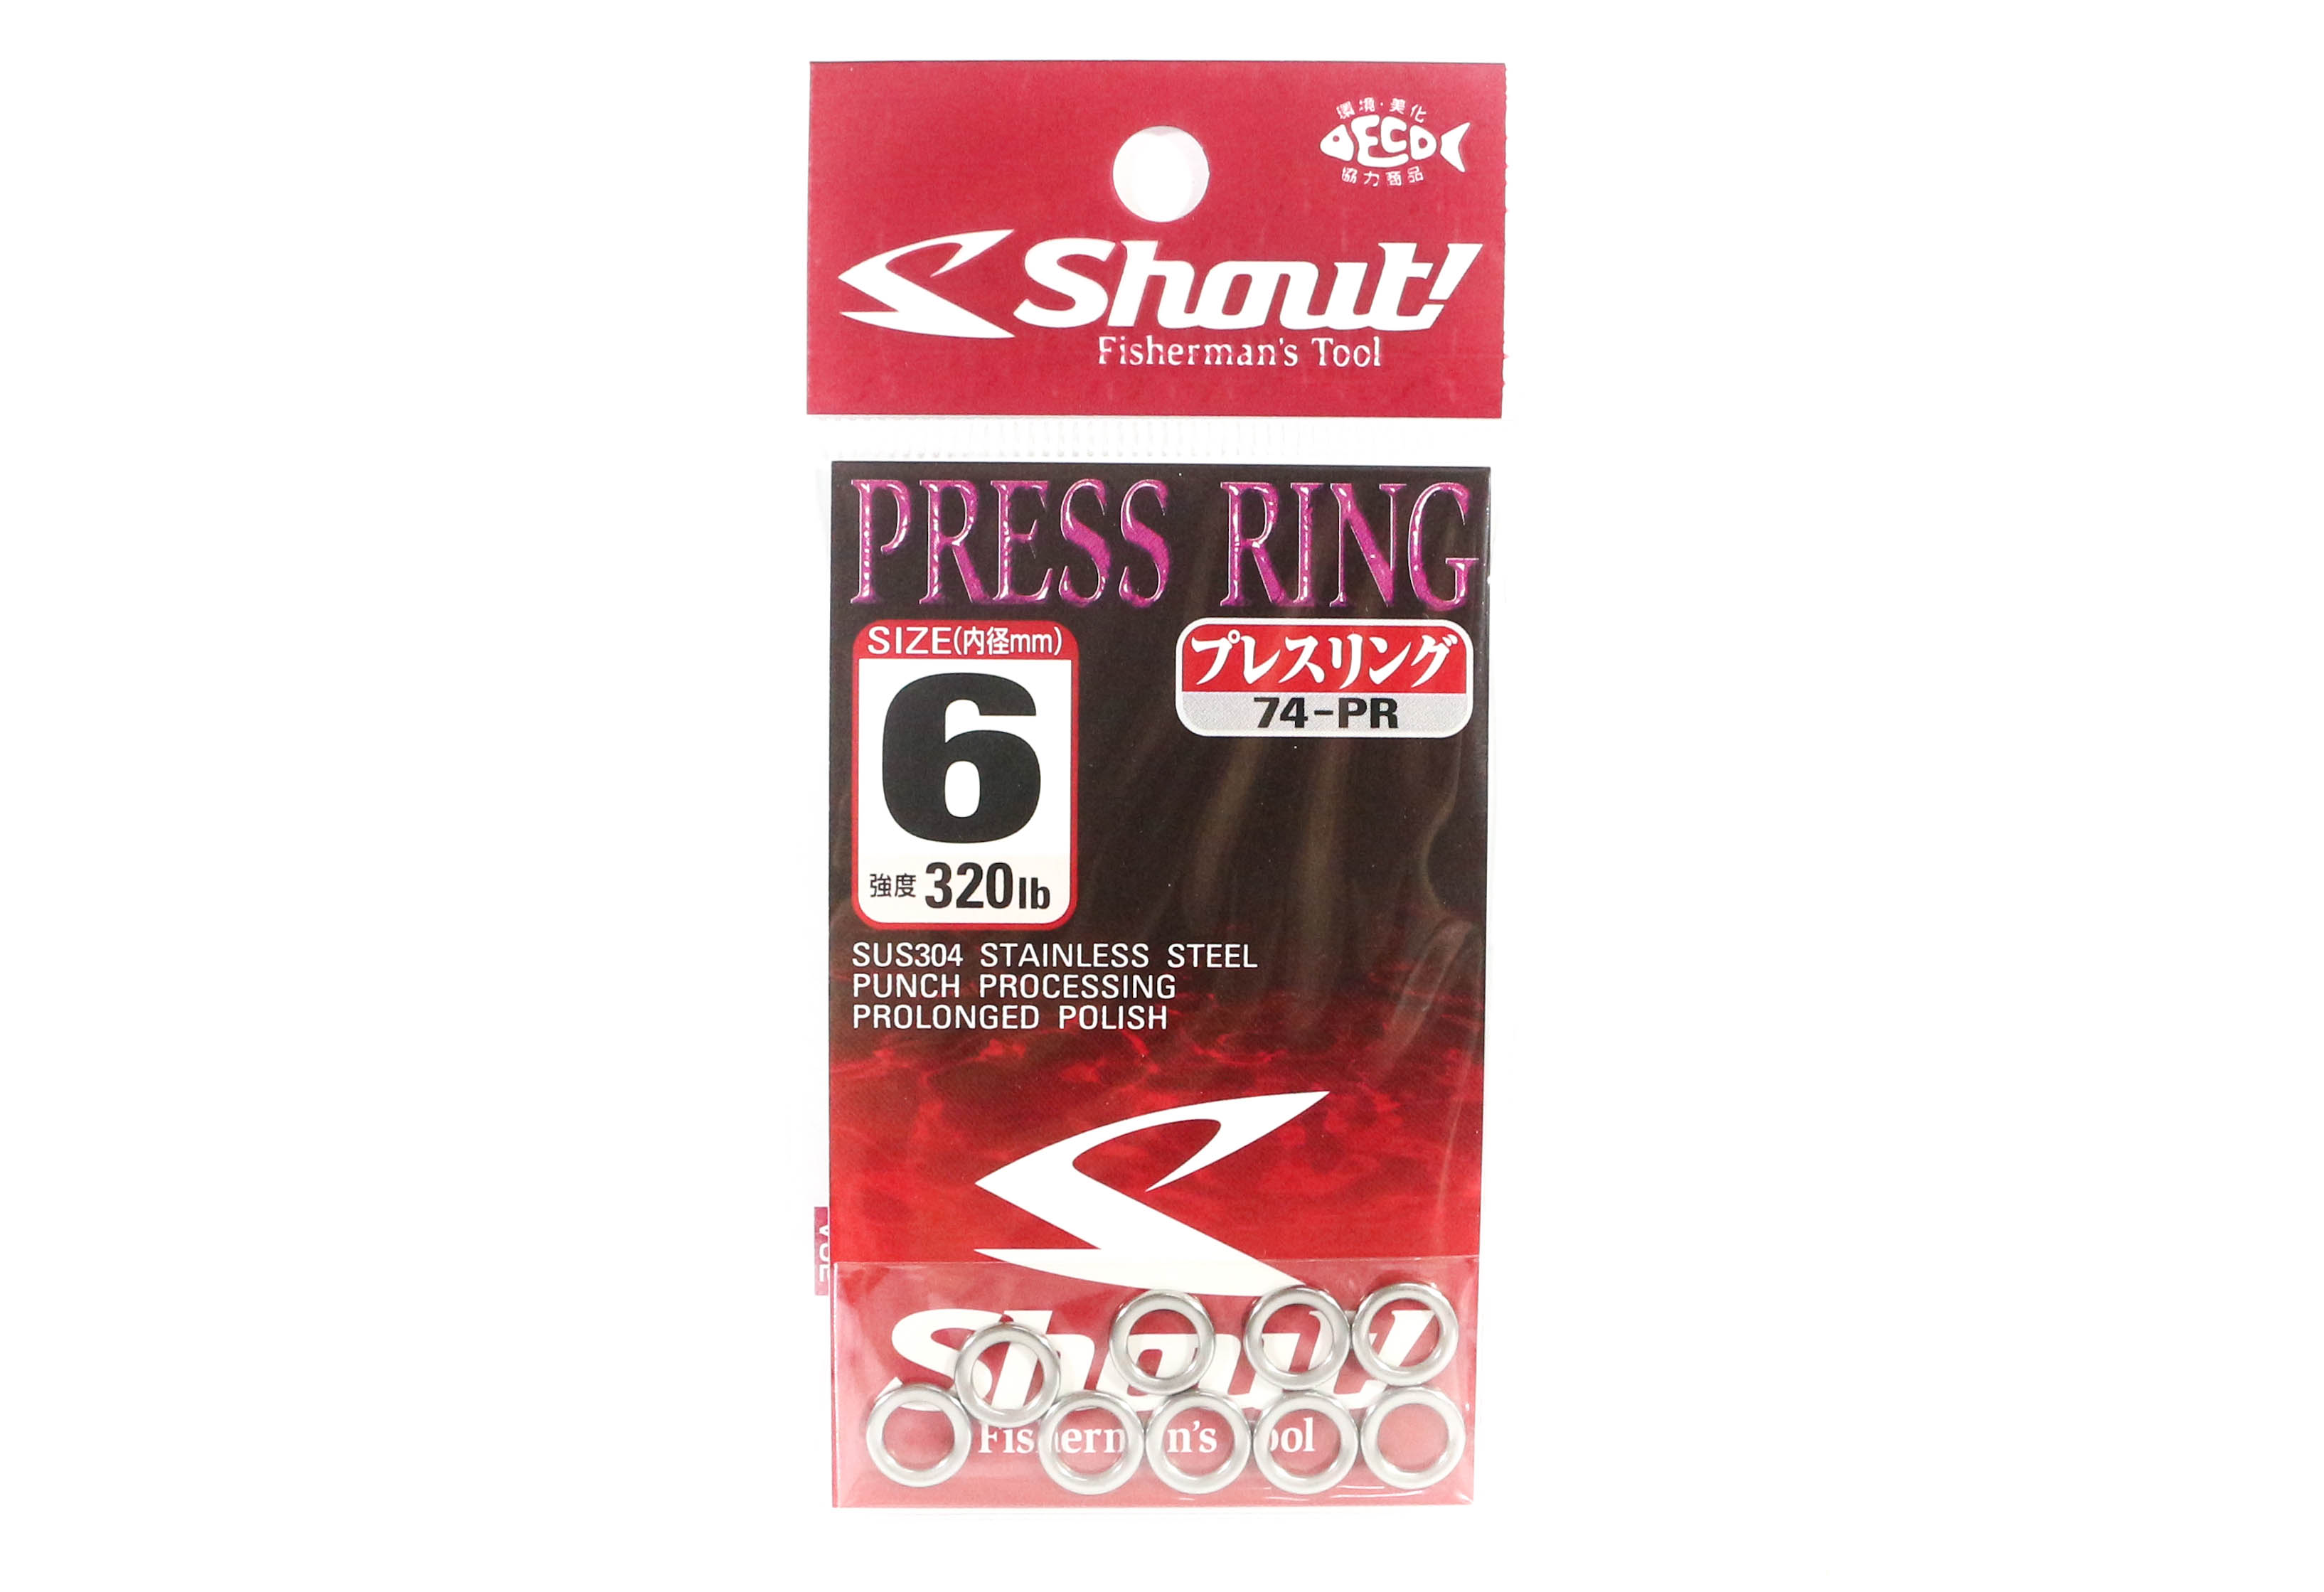 Shout 74-PR Press Ring Standard Solid Ring Size 6 mm (5385)